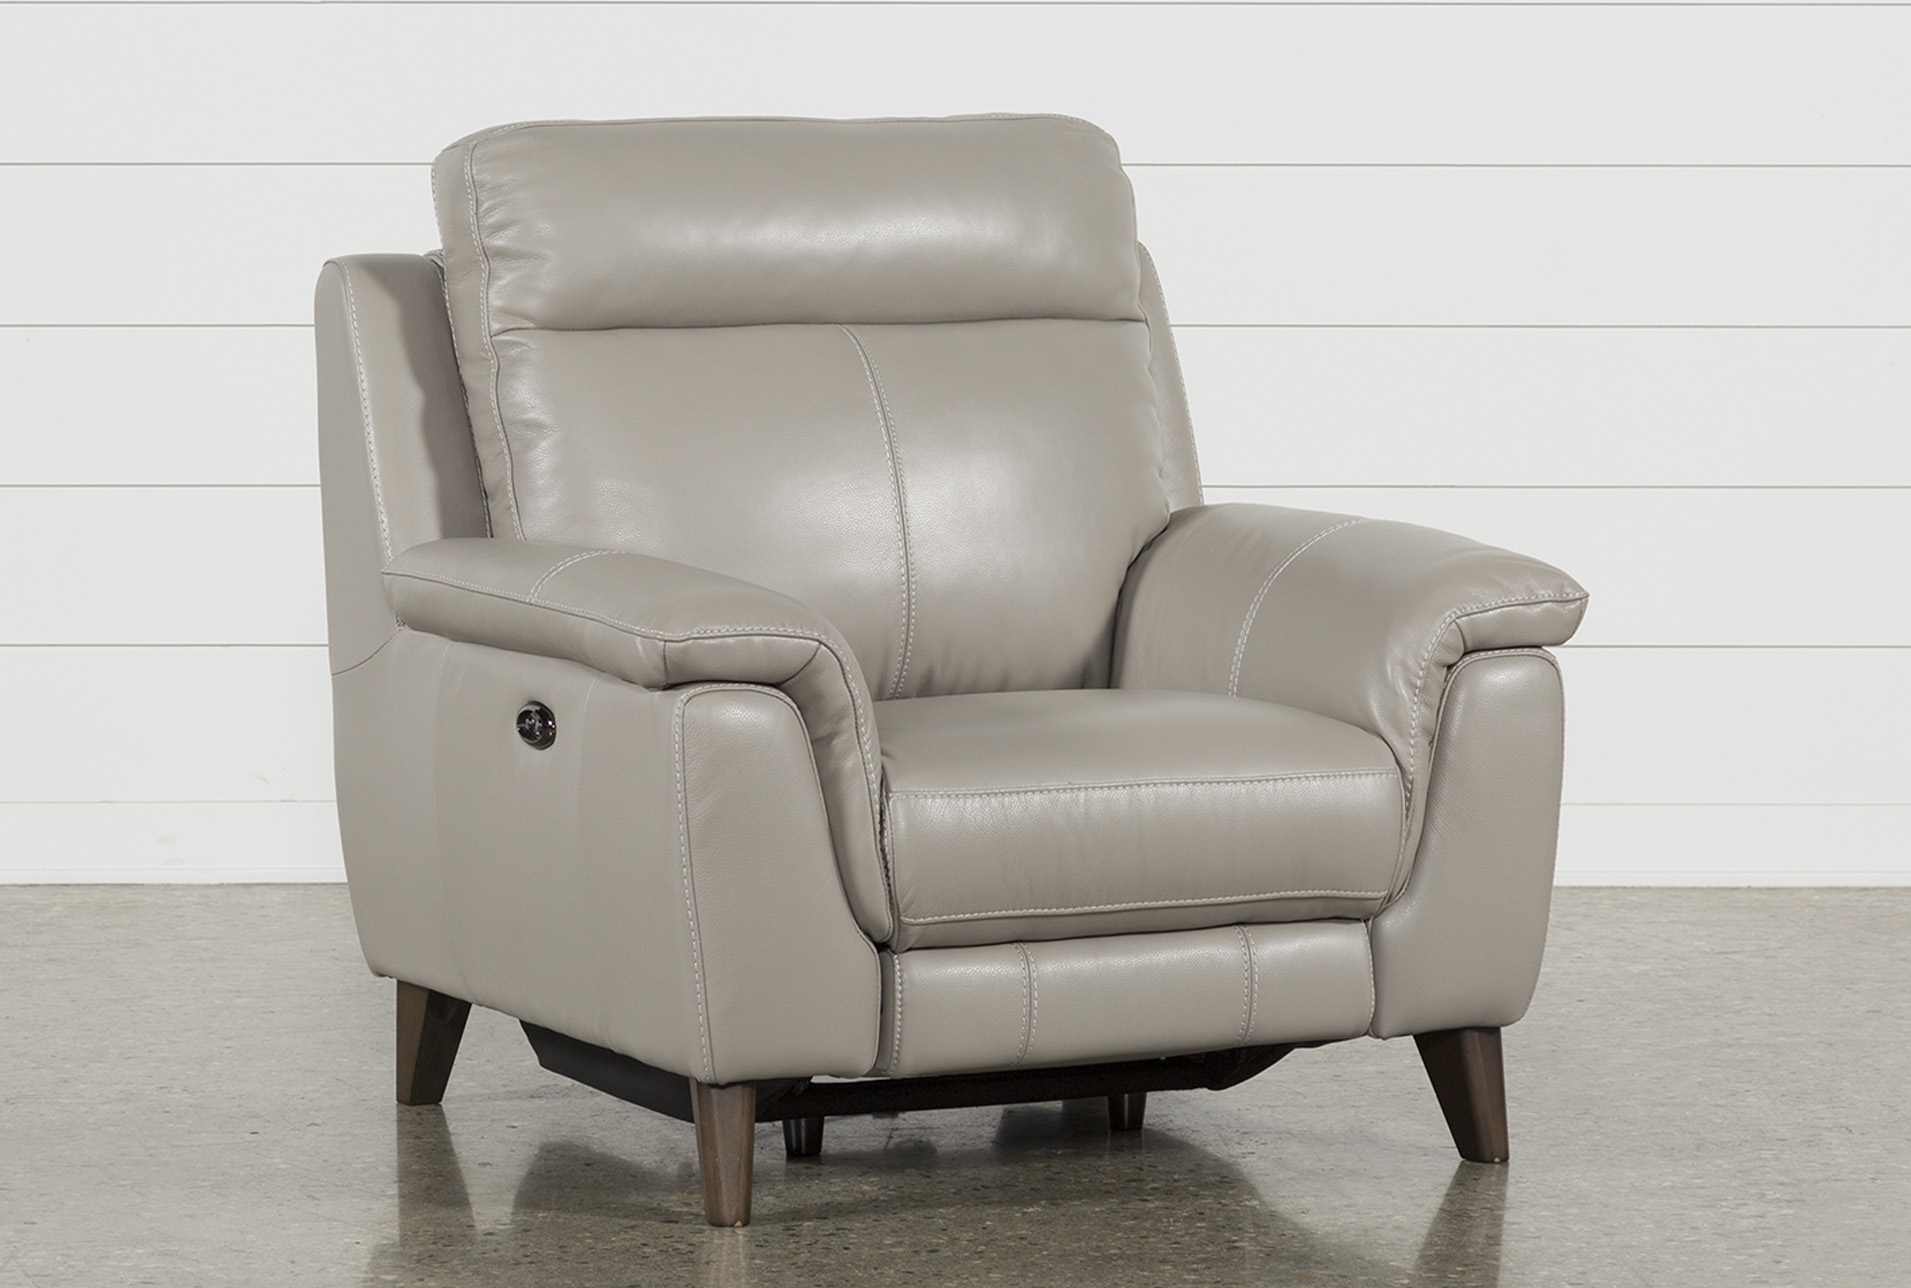 Superieur Moana Taupe Leather Power Reclining Chair With Usb (Qty: 1) Has Been  Successfully Added To Your Cart.